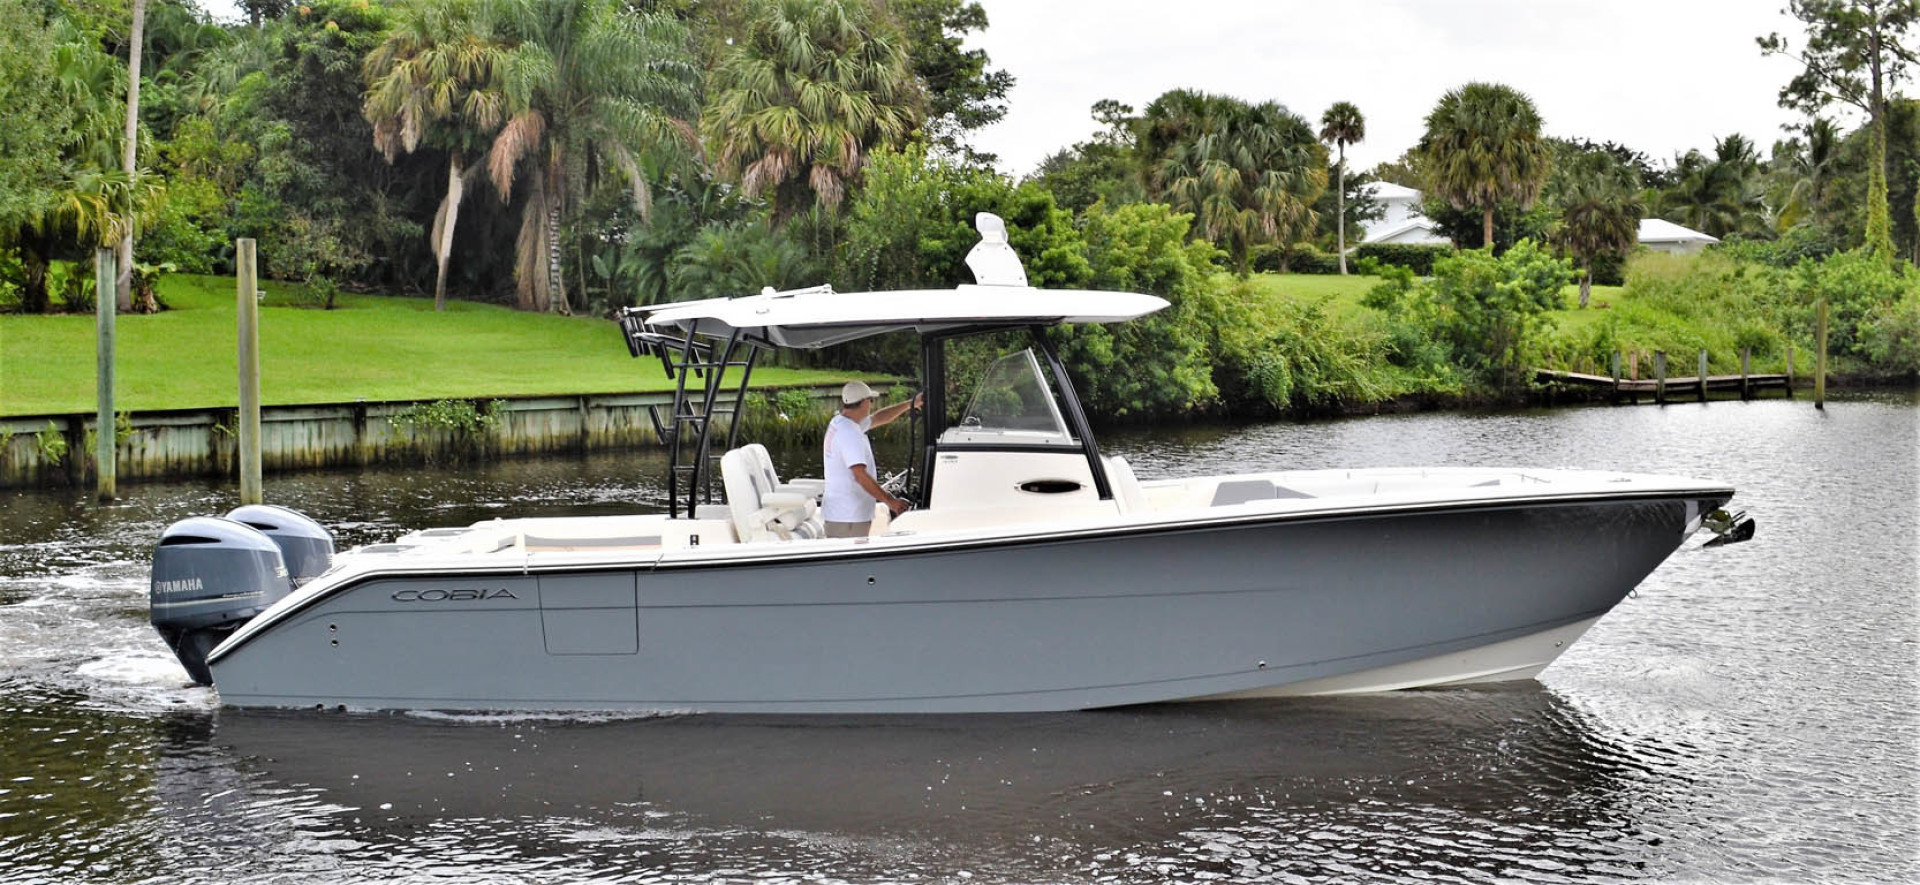 Cobia-320 CC 2019-Pivoting Palm City-Florida-United States-Starboard-1534004 | Thumbnail